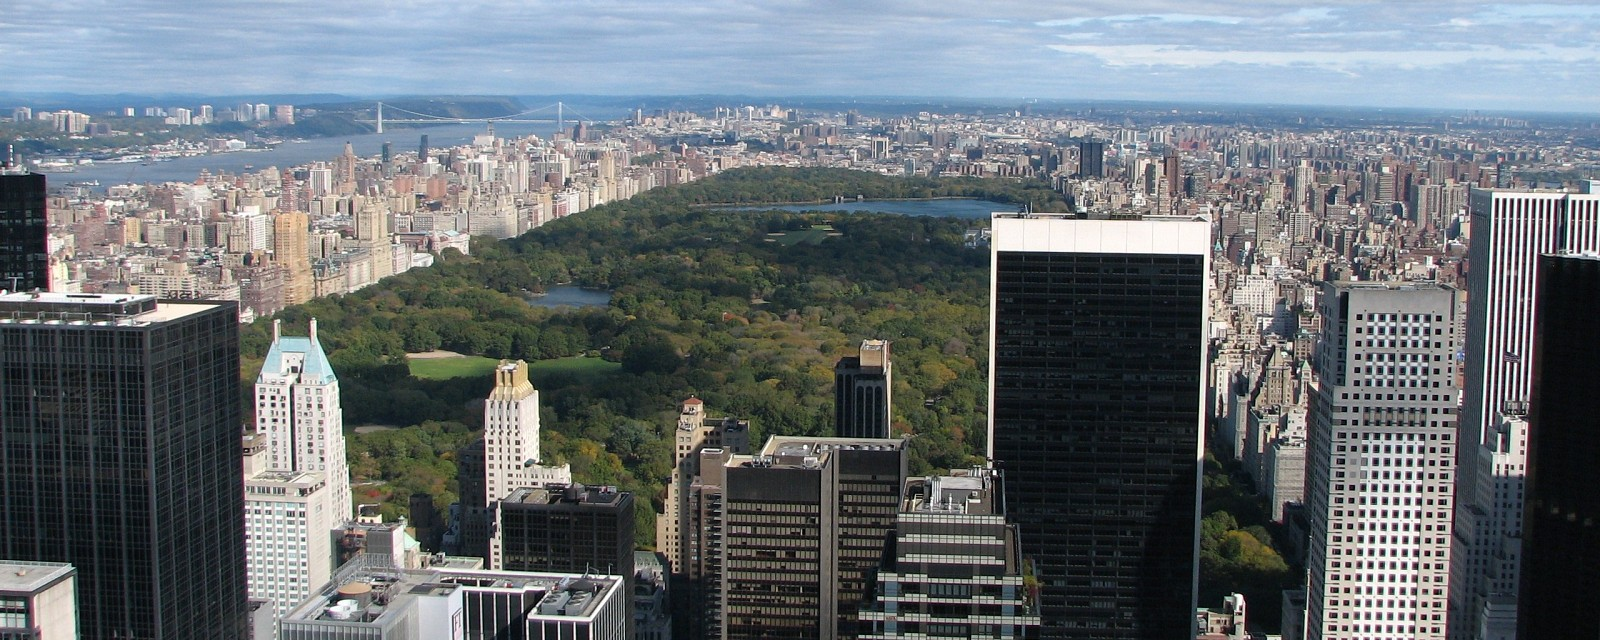 New York Oct '08 302  Central Park from the Top